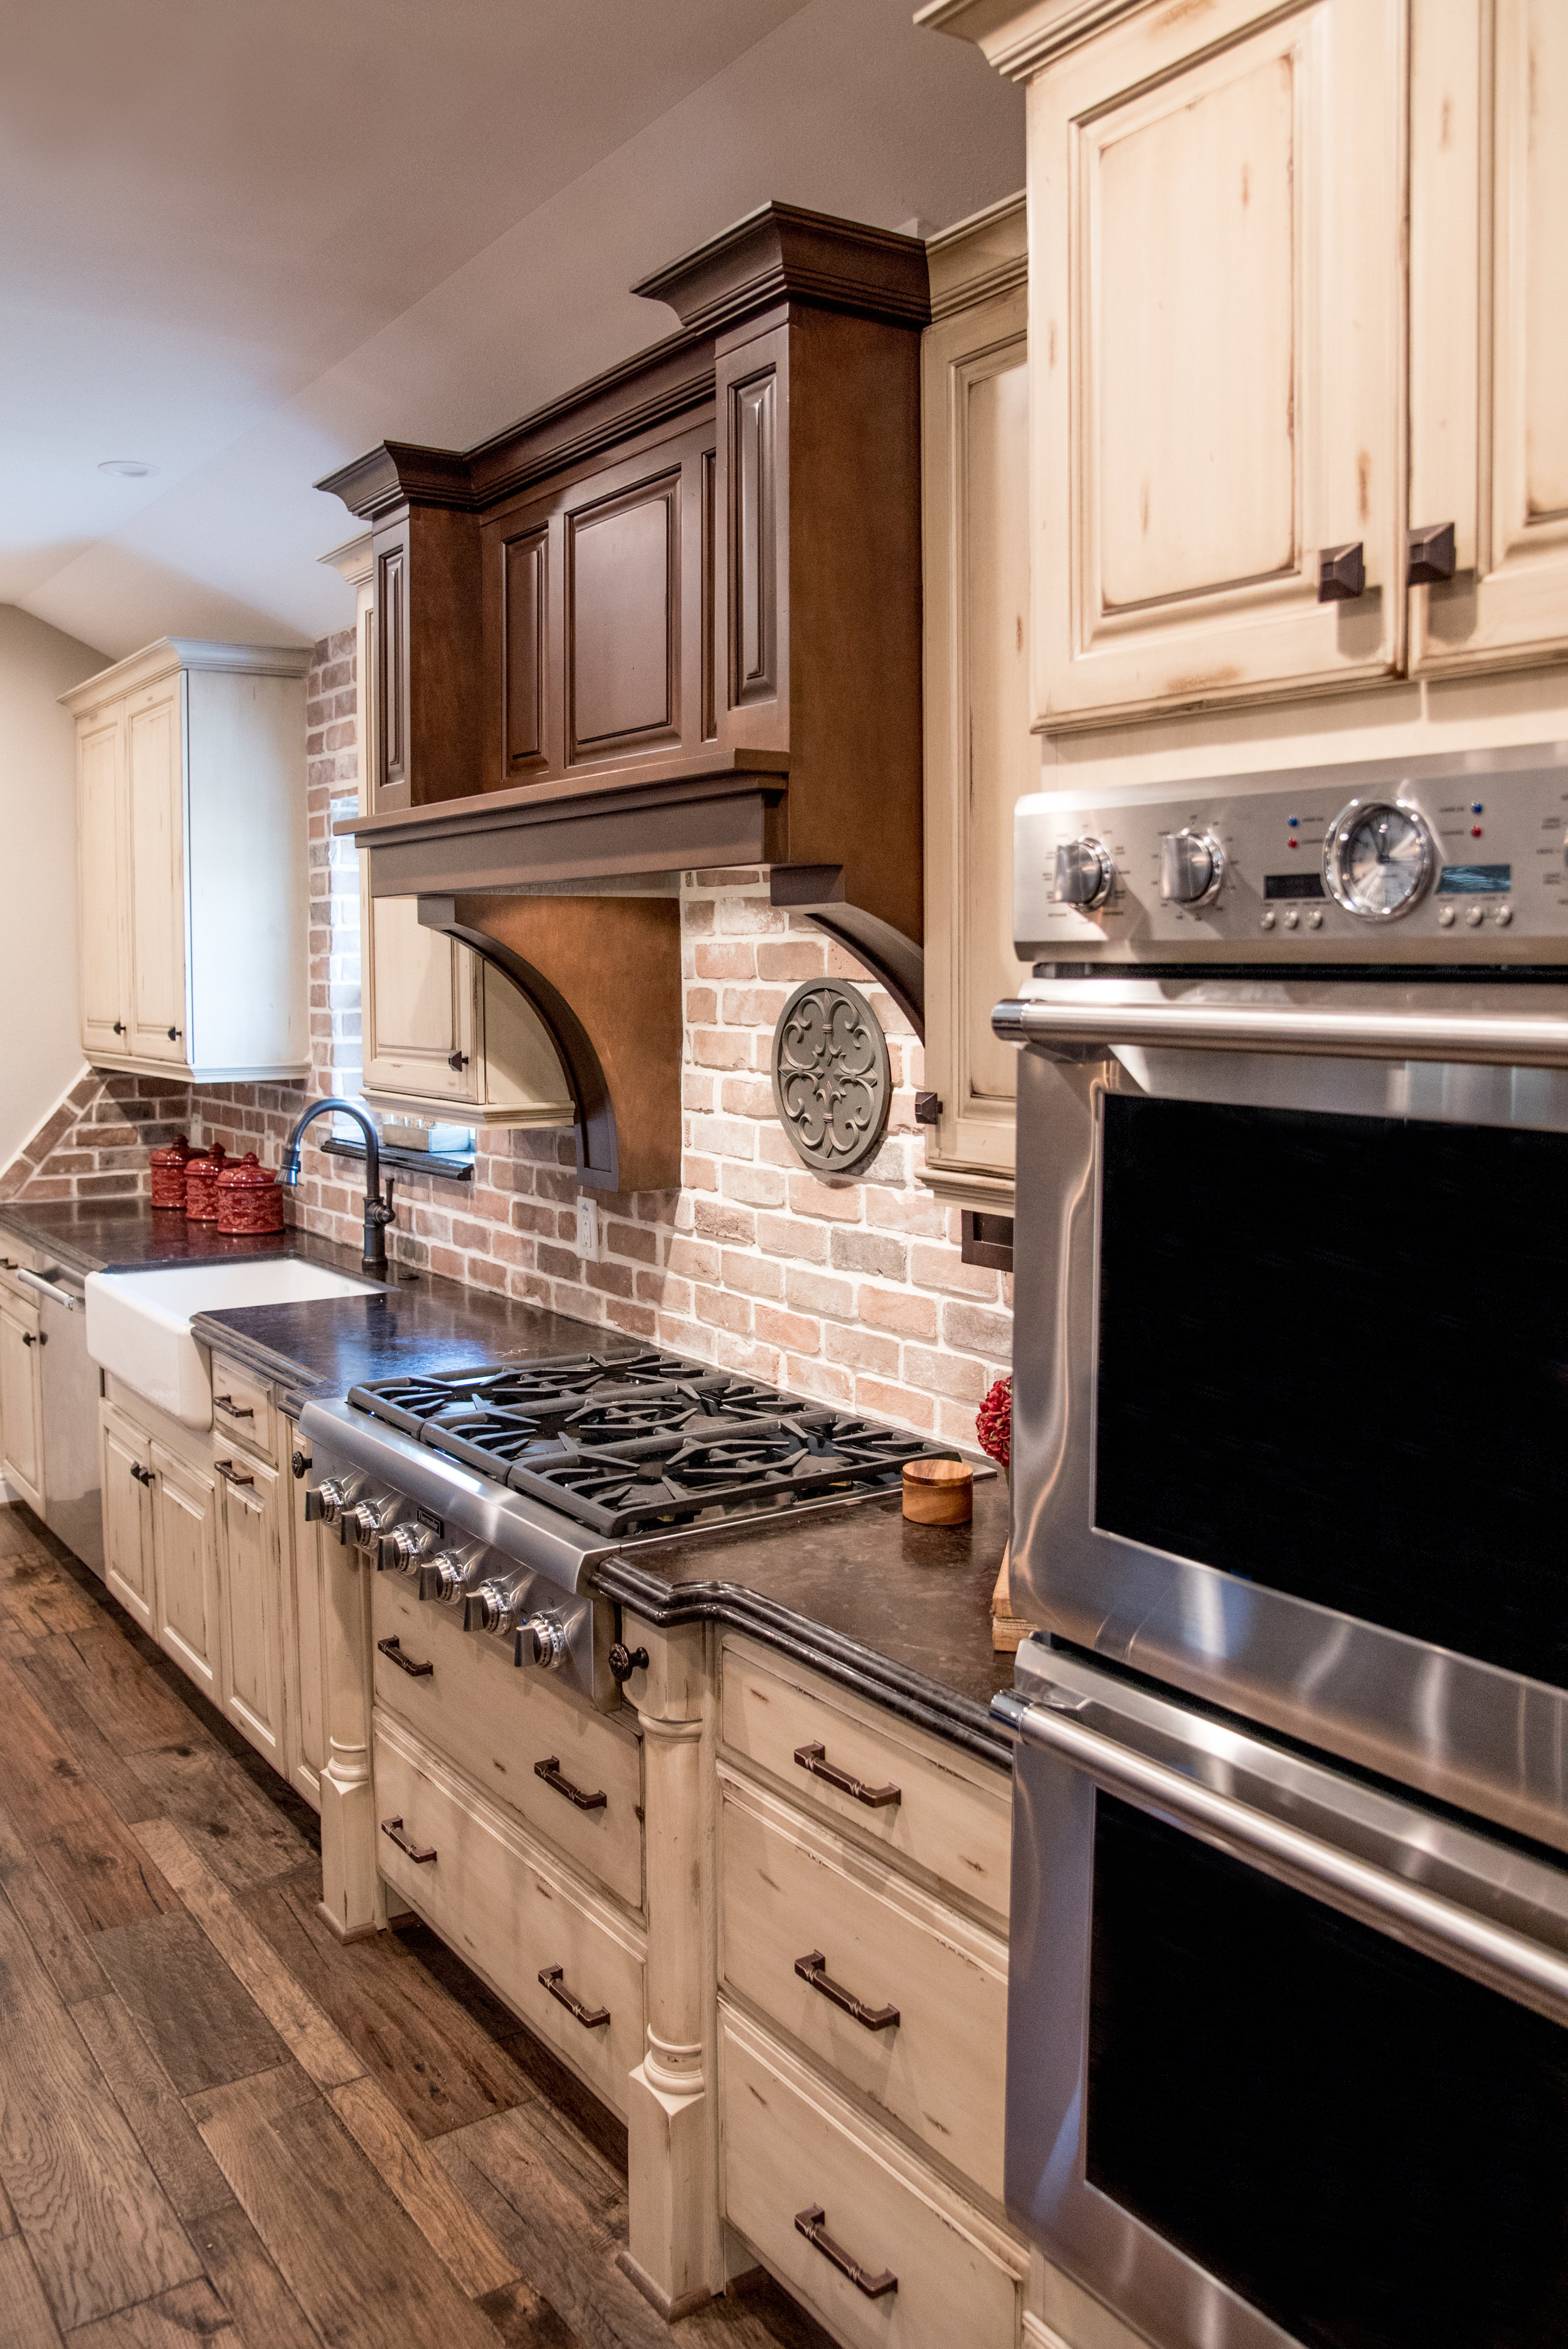 kitchen cabinets 2.jpg